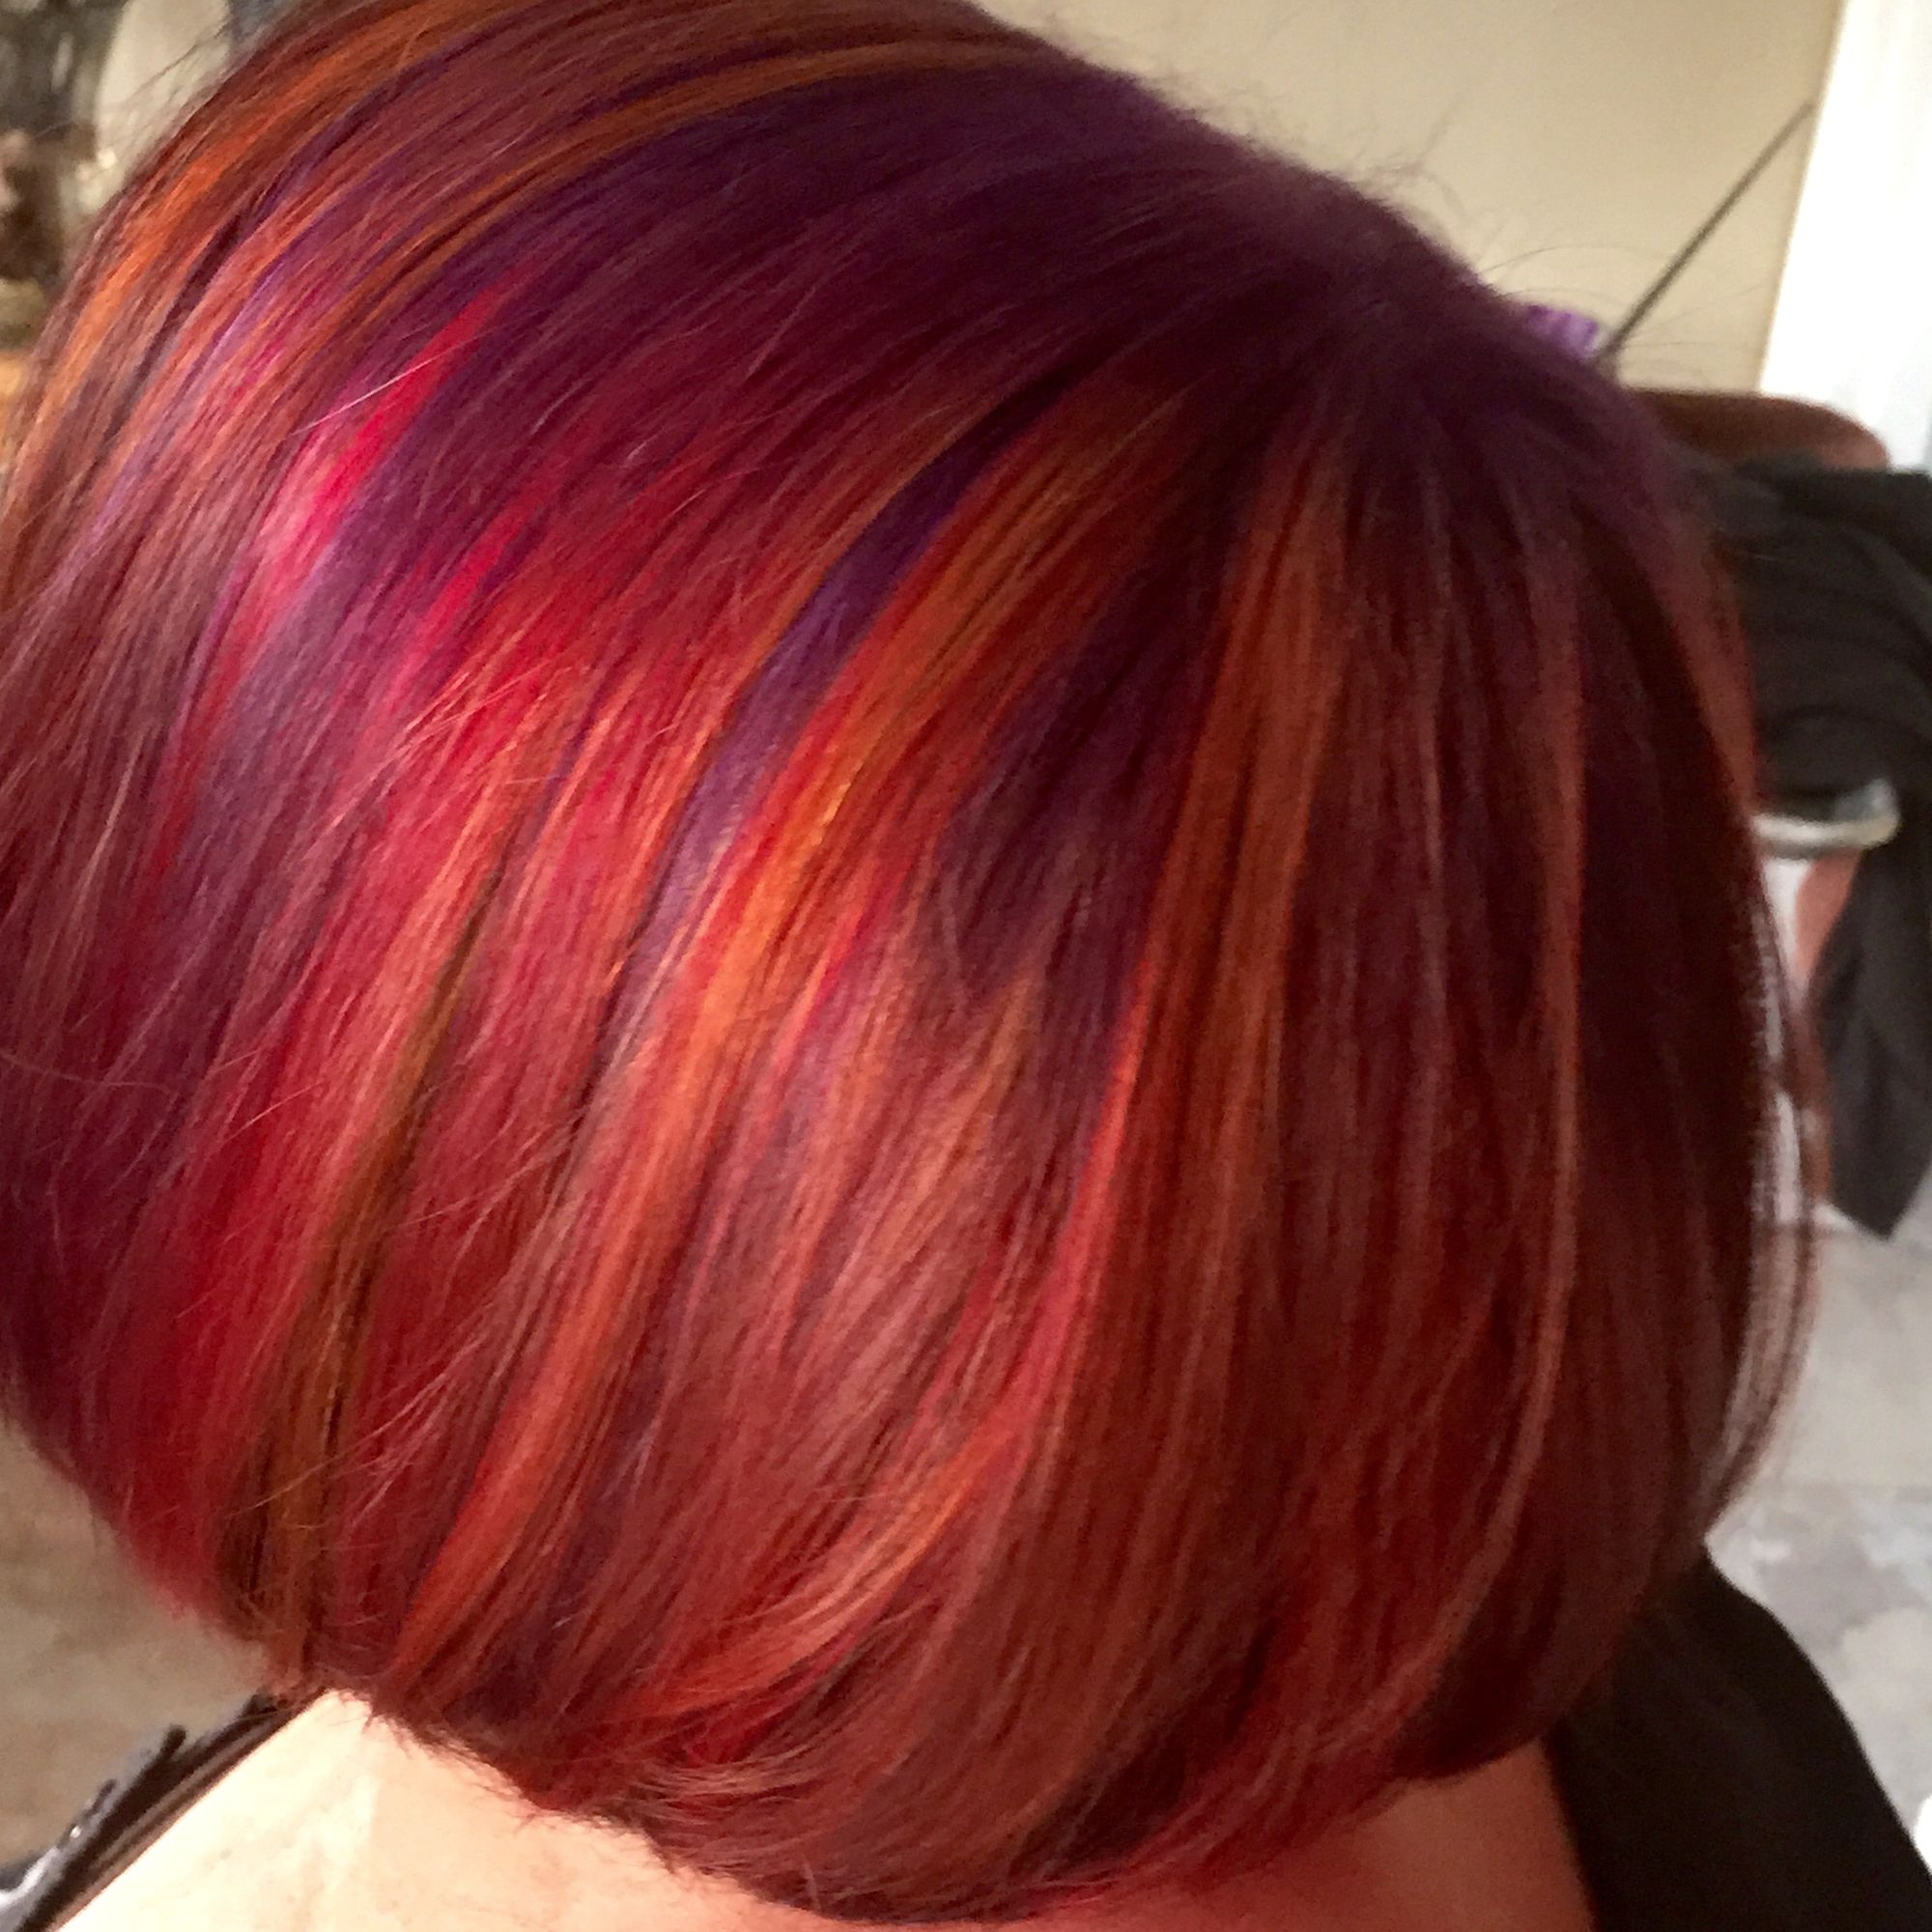 A Delicious Blend Of Purple, Red, Orange, And Blue | Hairstyles Intended For Burgundy And Tangerine Piecey Bob Hairstyles (View 11 of 20)